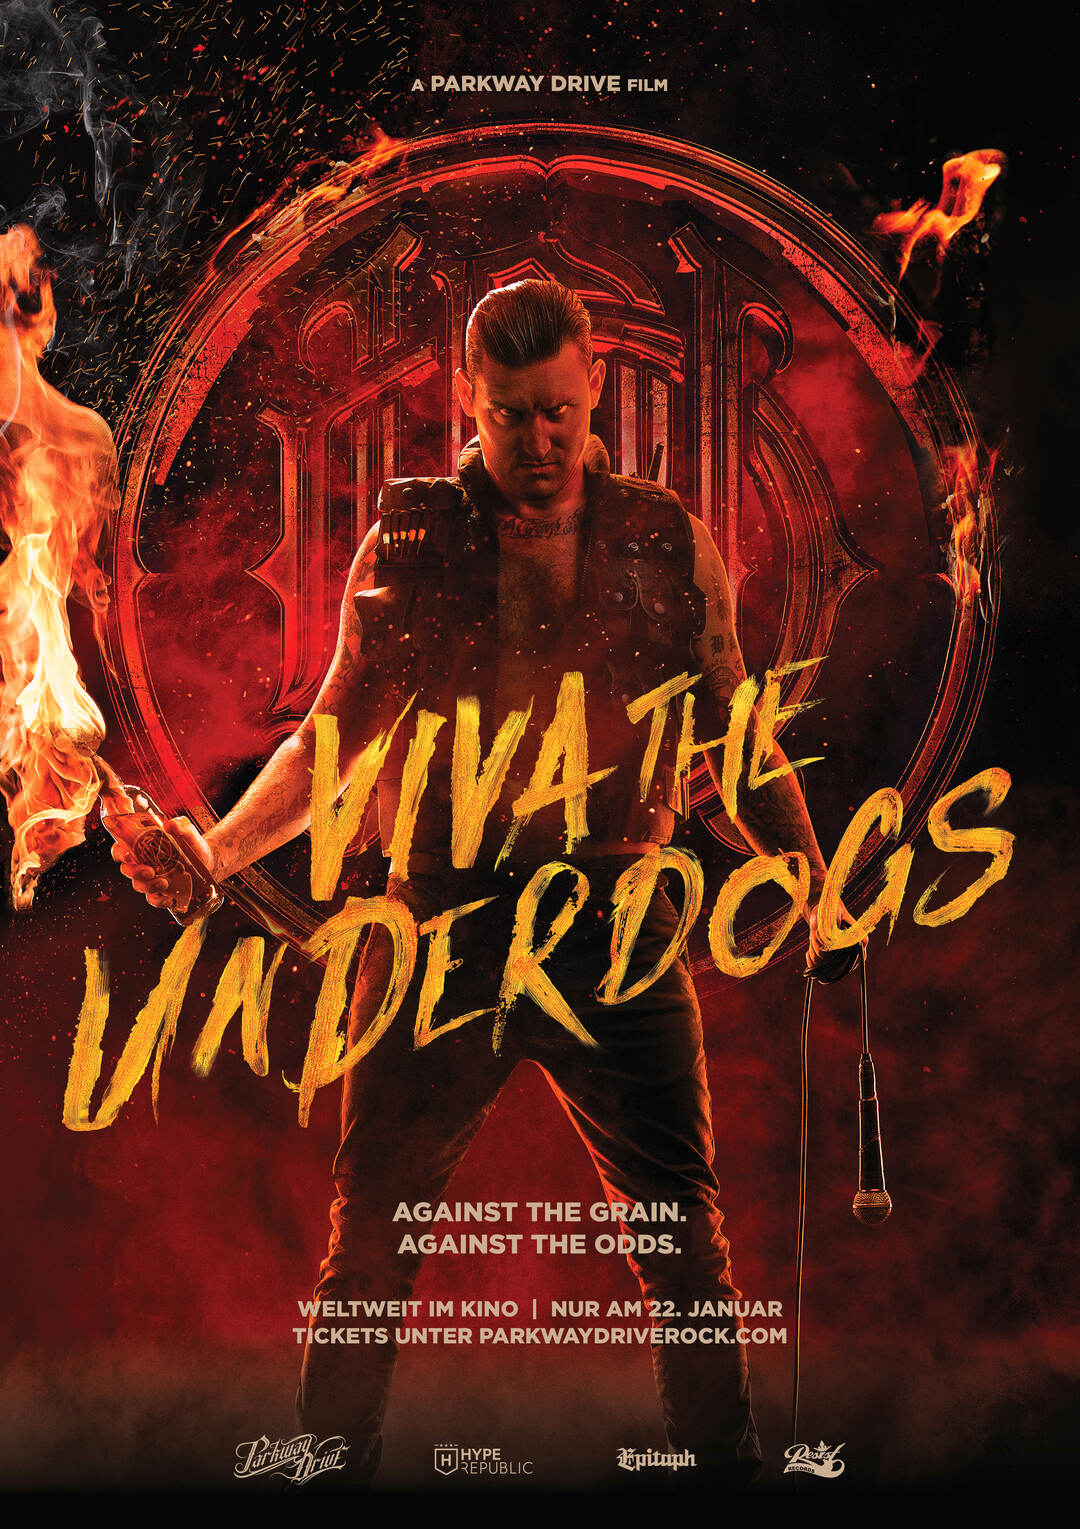 Viva the Underdogs Trailer - Bild 1 von 9